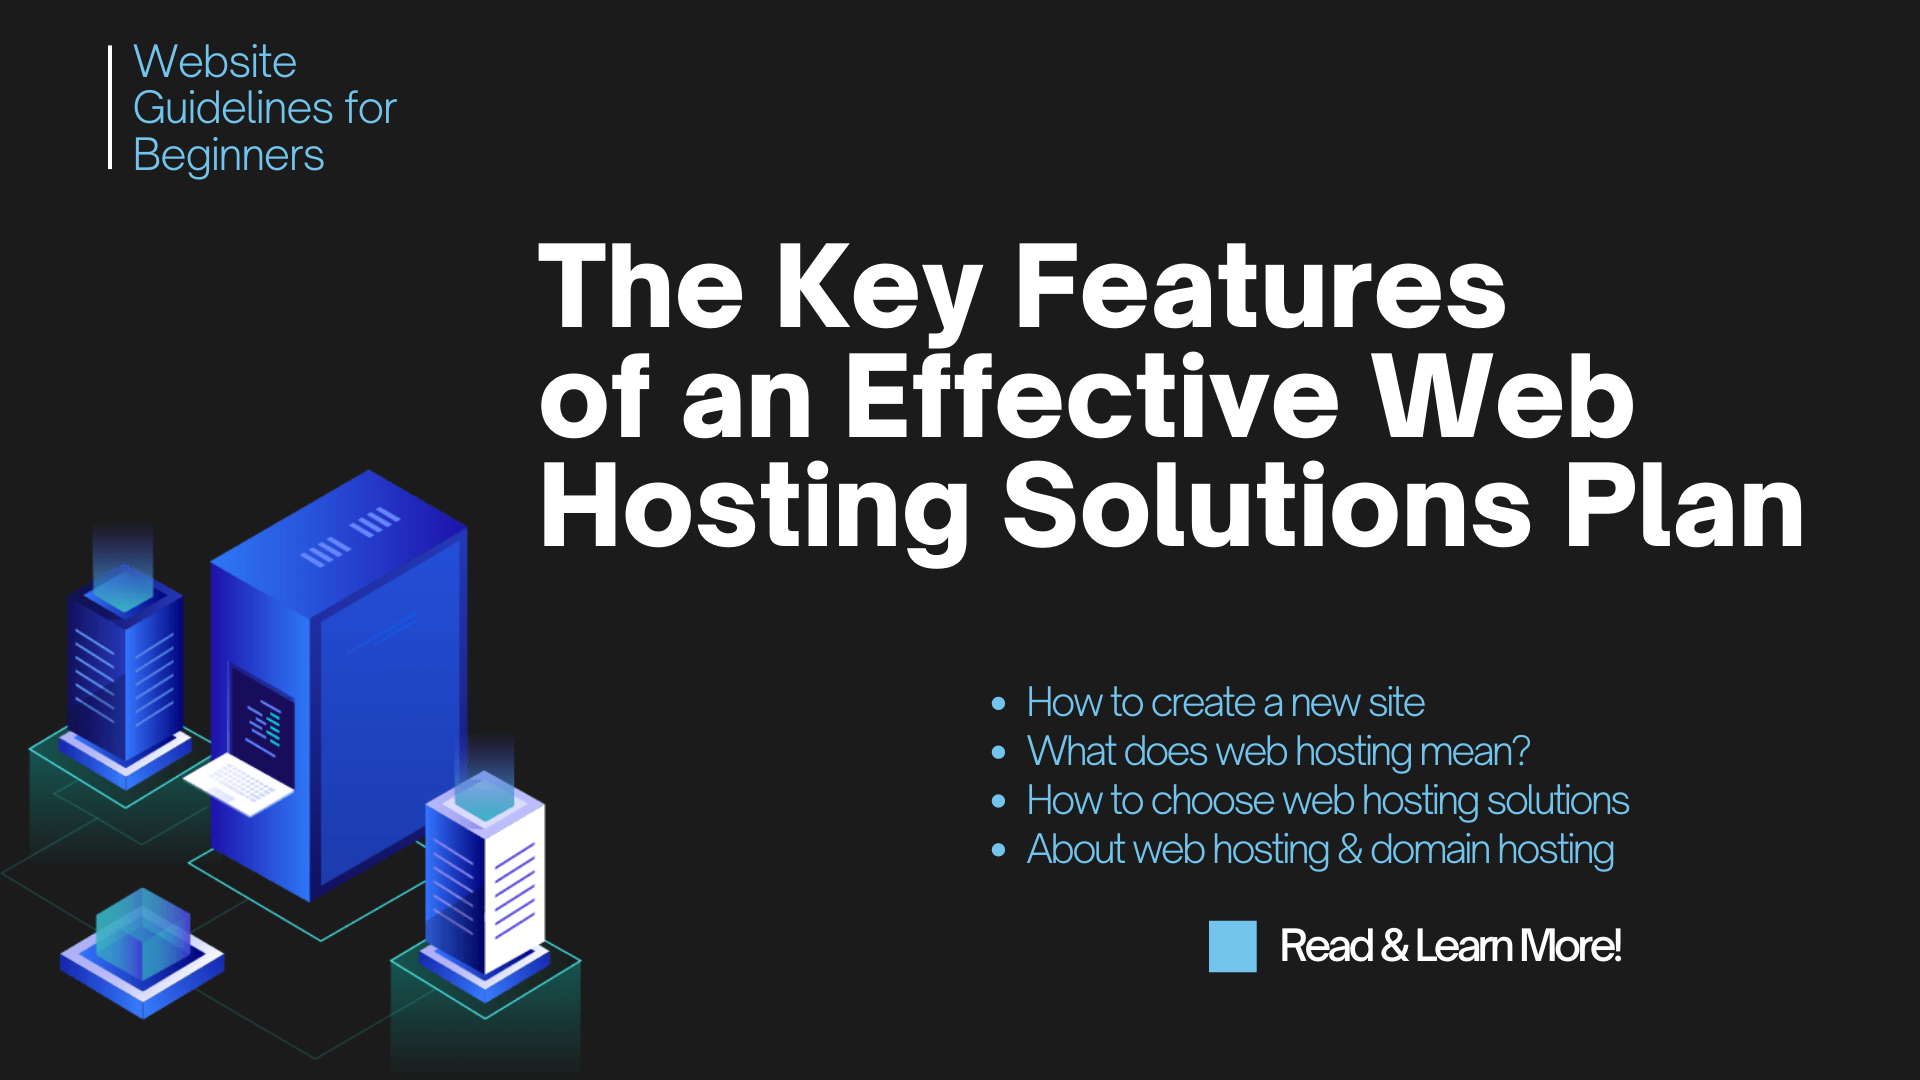 How to Choose a Web Hosting Solution Plan